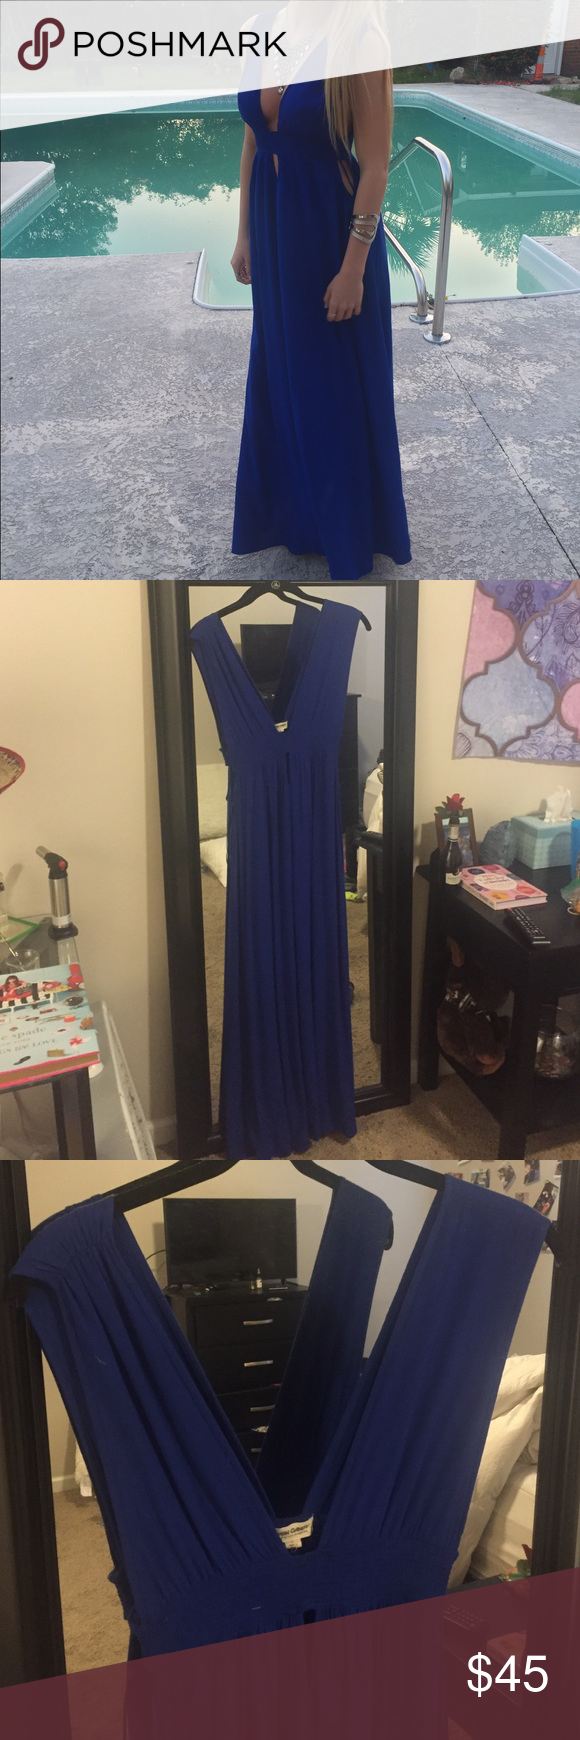 Blue maxi dress Blue maxi dress perfect for a casual prom dress or any occasion, only worn once! cotton candy Dresses Maxi